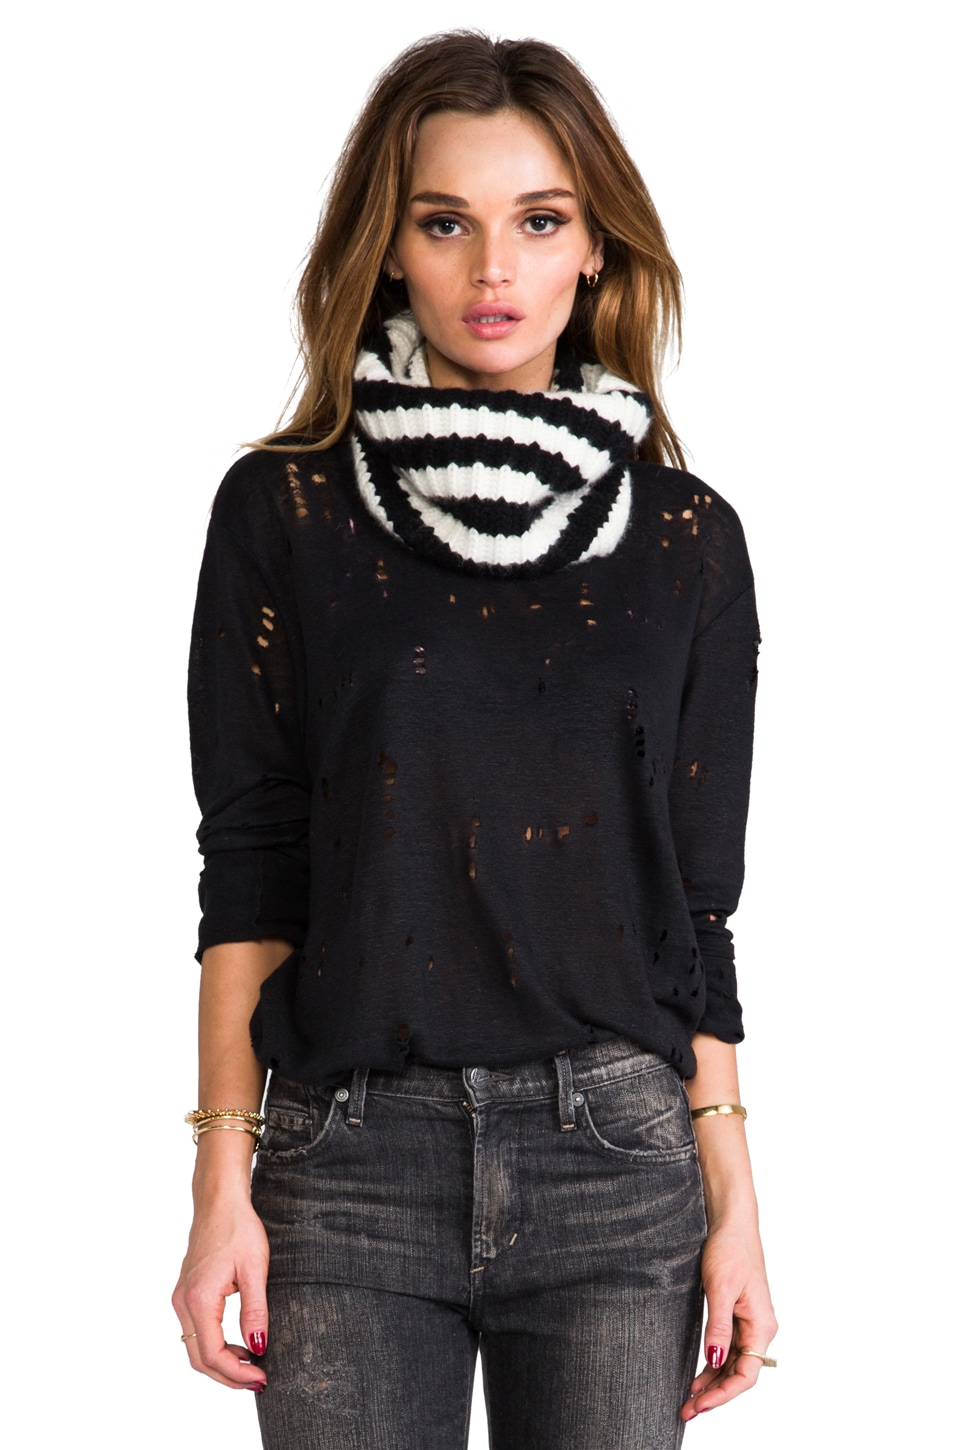 DemyLee Cashmere Stripe Eternity Scarf in White/Black